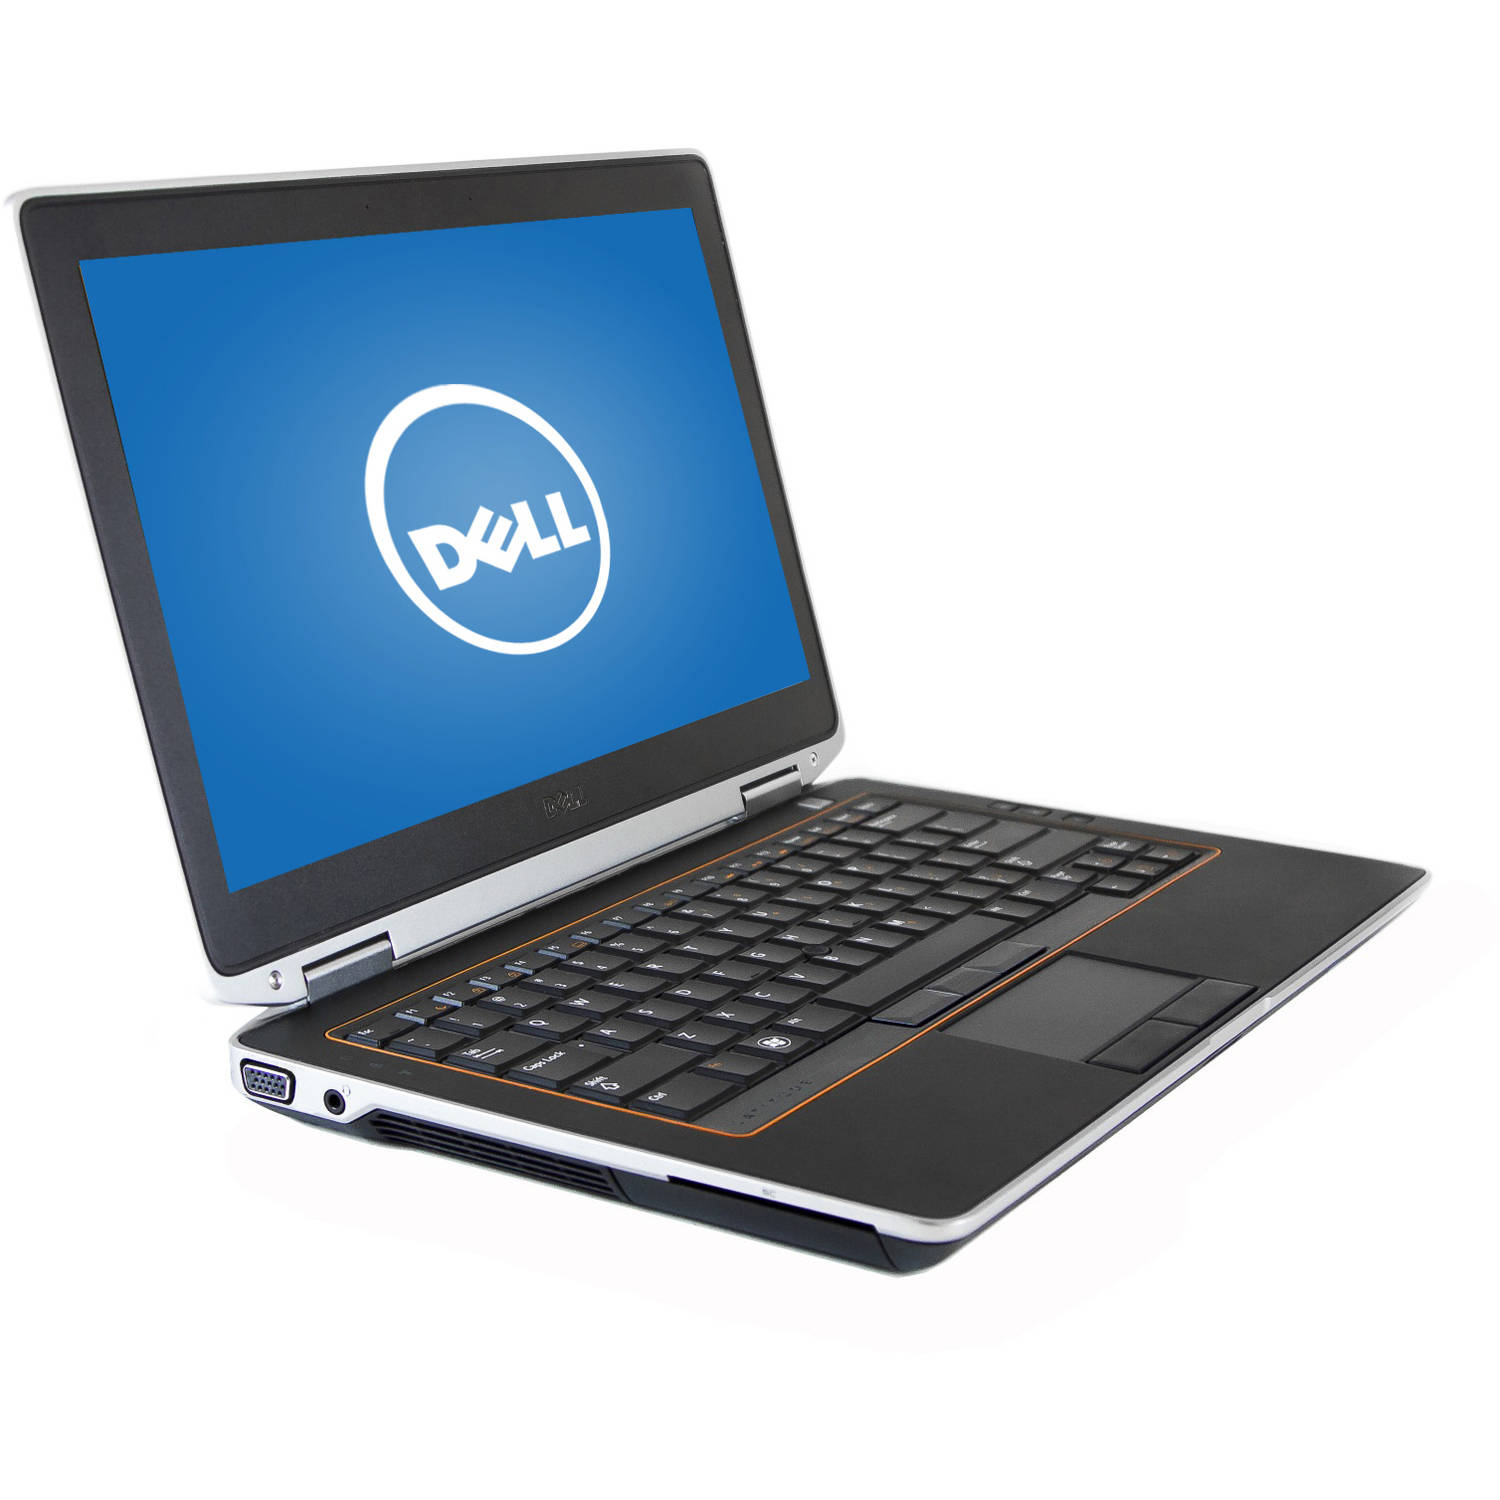 "Refurbished Dell Black 13.3"" Latitude E6320 WA5-0971 Laptop PC with Intel Core i5-2520M Processor, 4GB Memory, 128GB Solid State Drive and Windows 10 Pro"